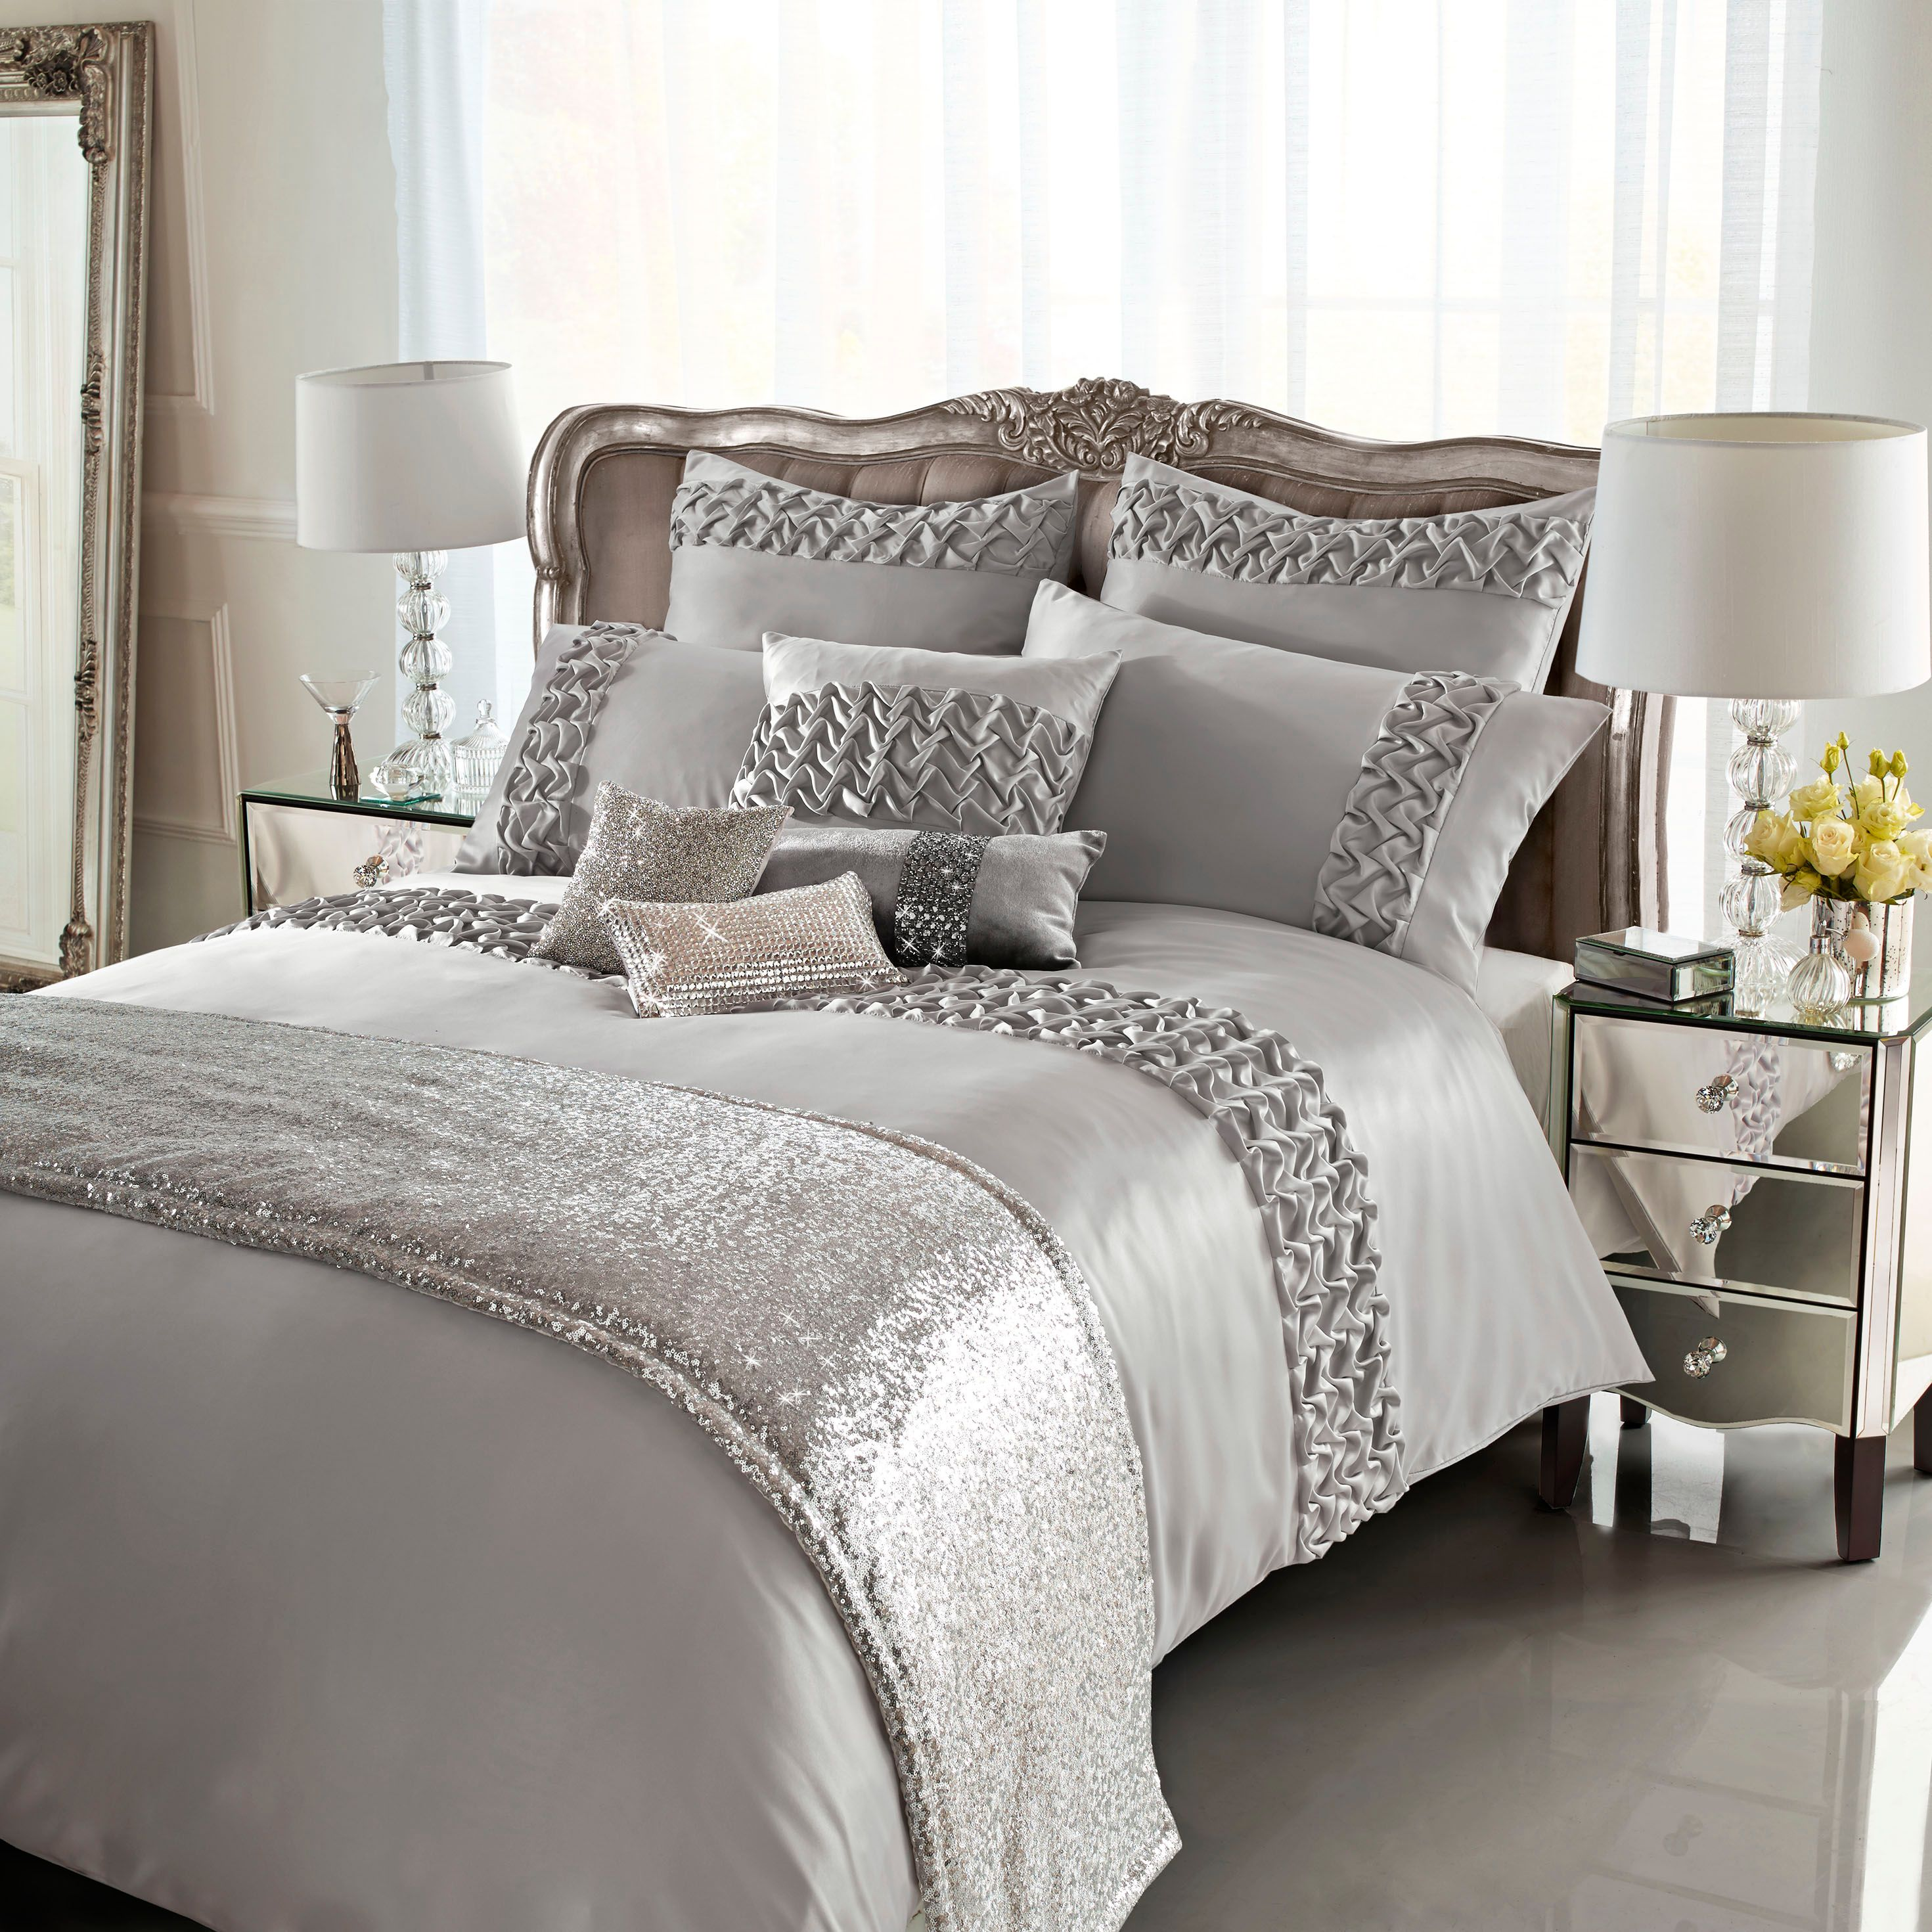 House of fraser curtains and bedding for Housse of frazer